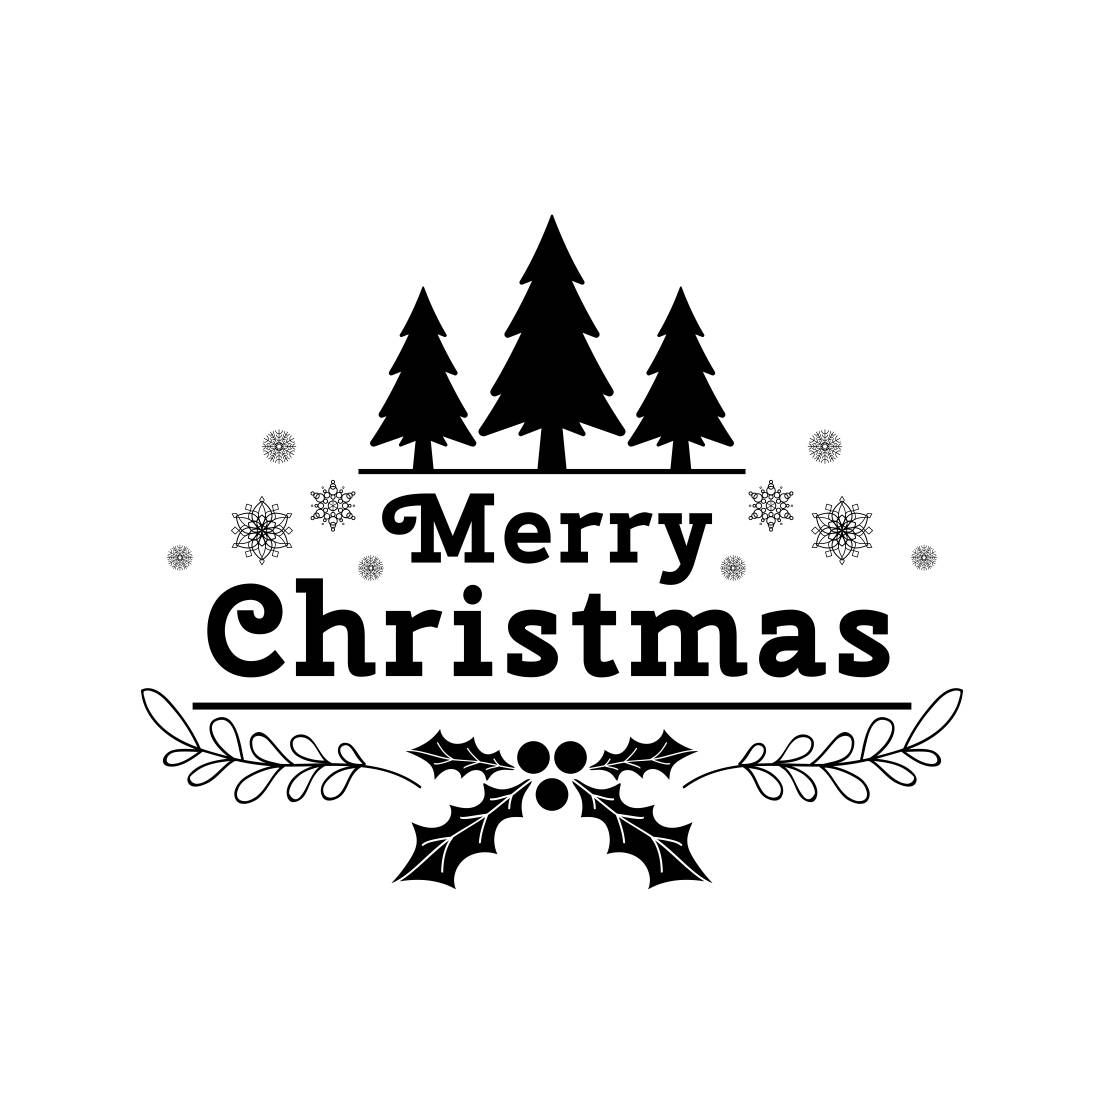 Merry Christmas Tree Snowflakes Graphics Svg Dxf Eps